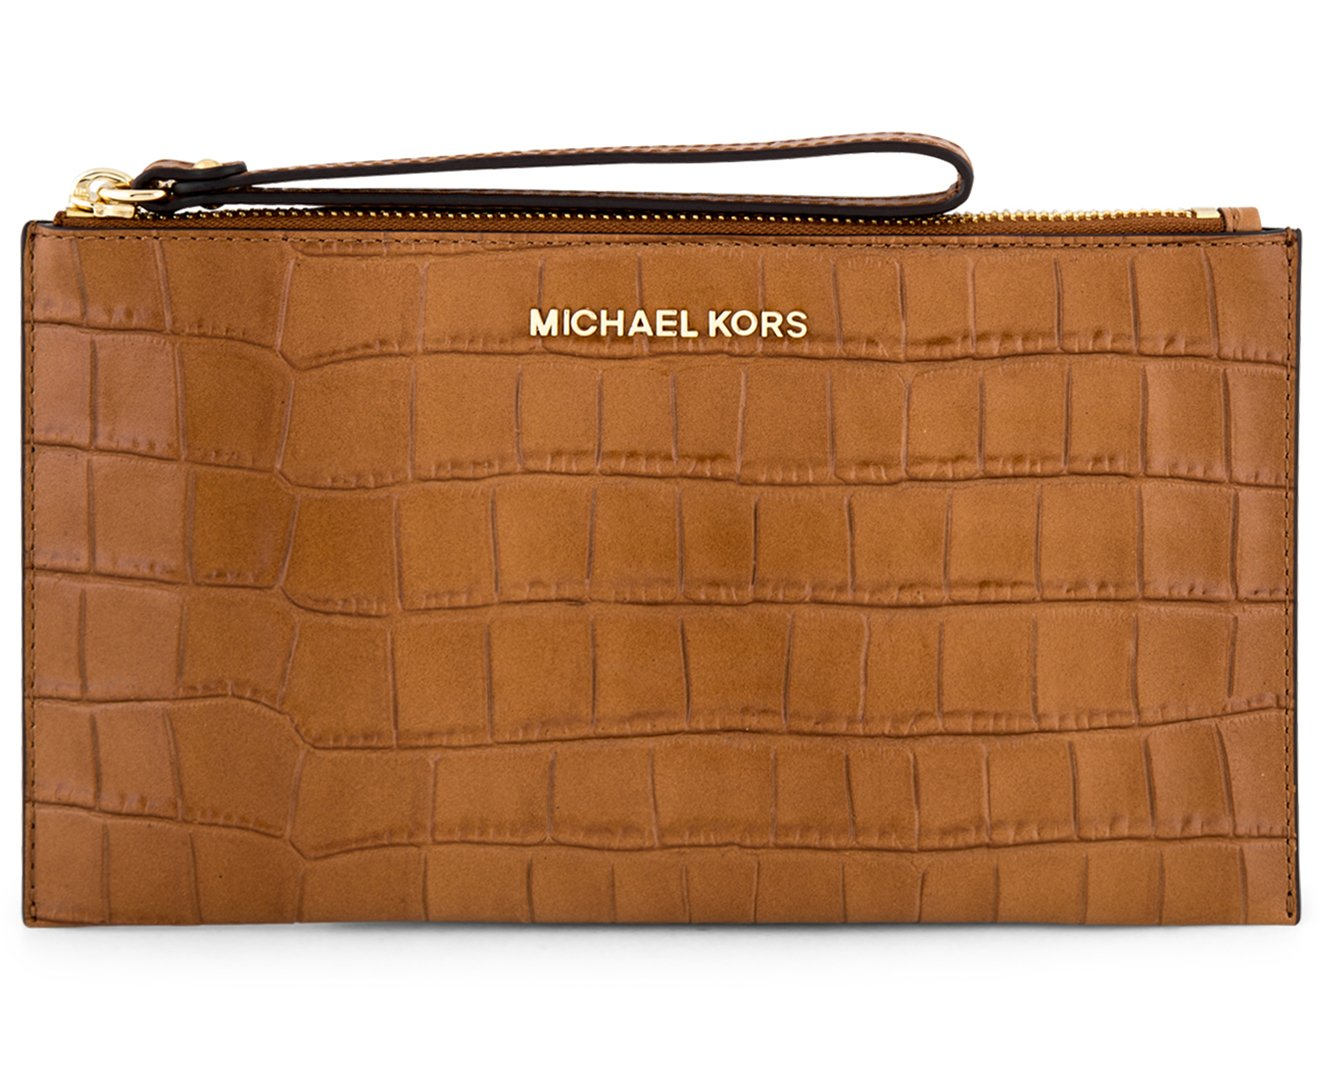 Michael Kors Bedford Embossed Leather Large Zip Clutch, Walnut